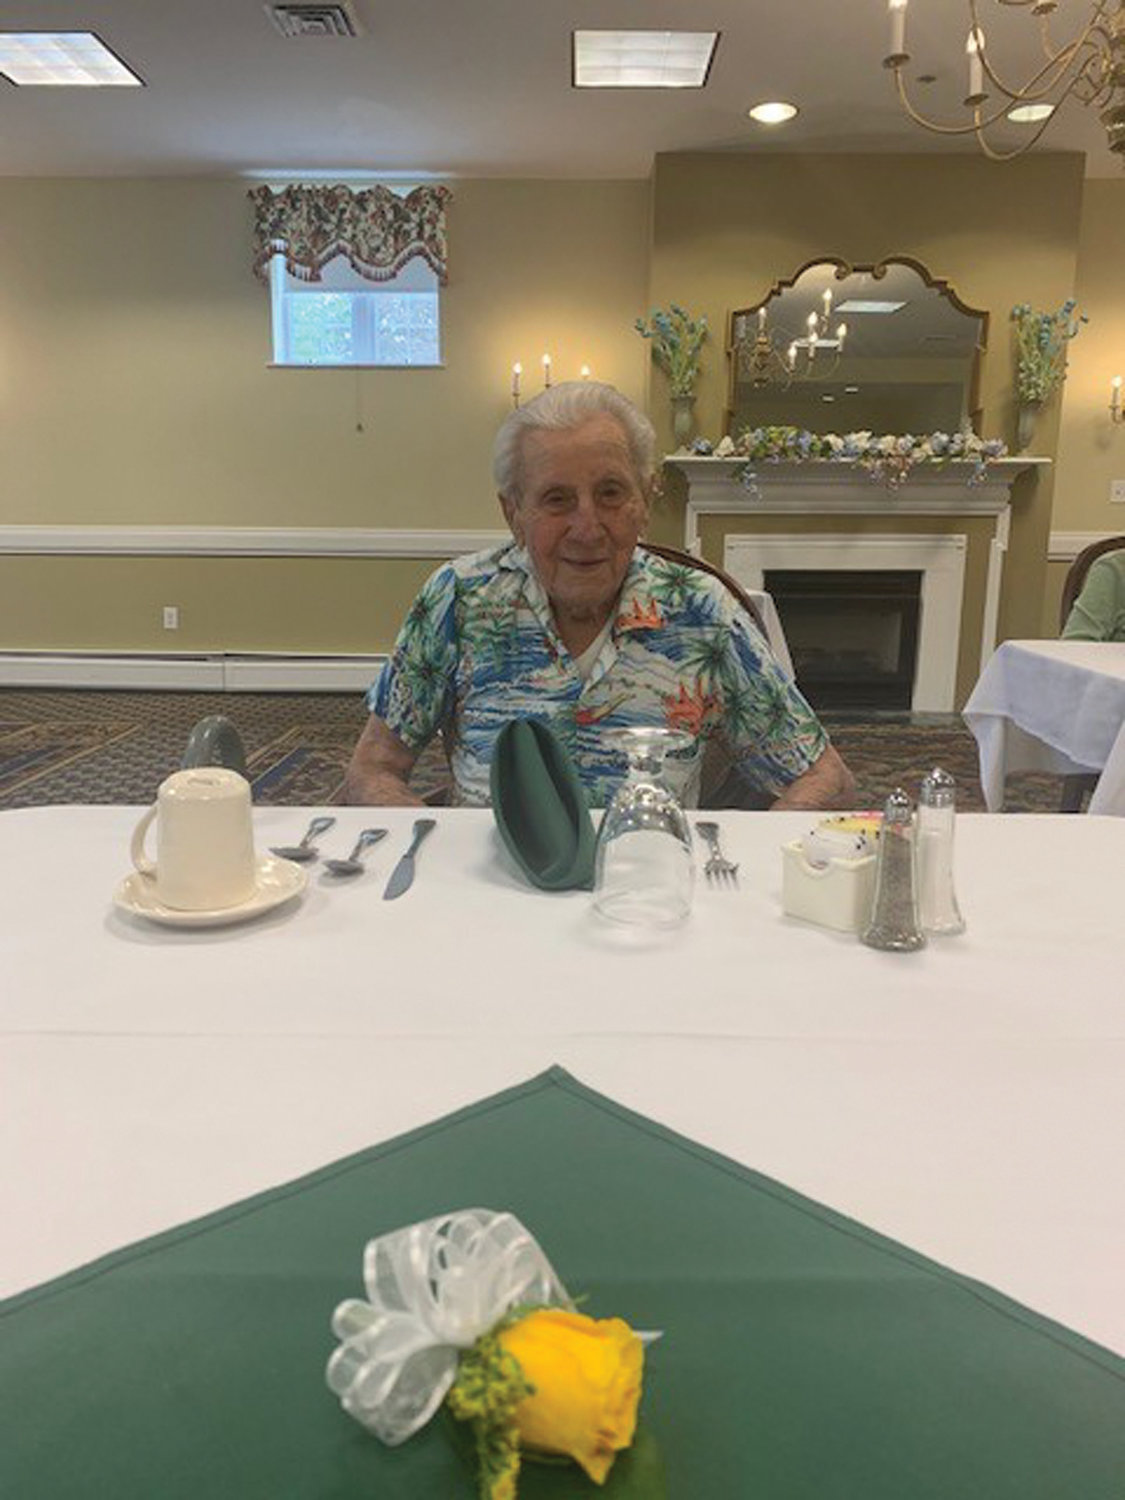 ALWAYS BE NICE: Nat Piccirilli, 100, said listening to one's parents and practicing kindness are important.